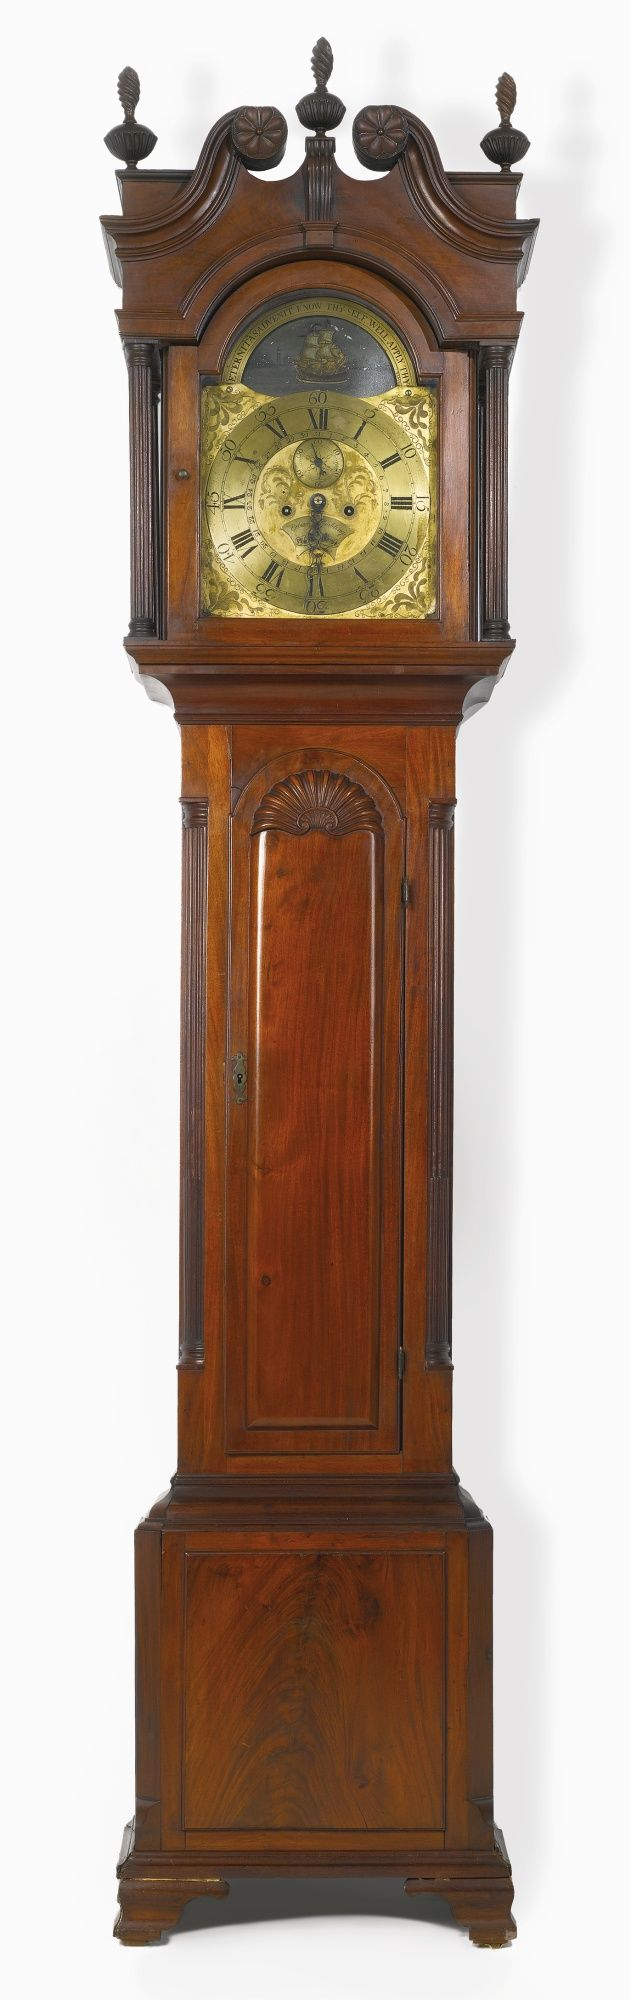 Chair antique queen anne chair the buzz on antiques antique chairs 101 - The Frieze Family Very Fine And Rare Chippendale Carved And Figured Mahogany Tall Case Clock Classic Furnitureantique